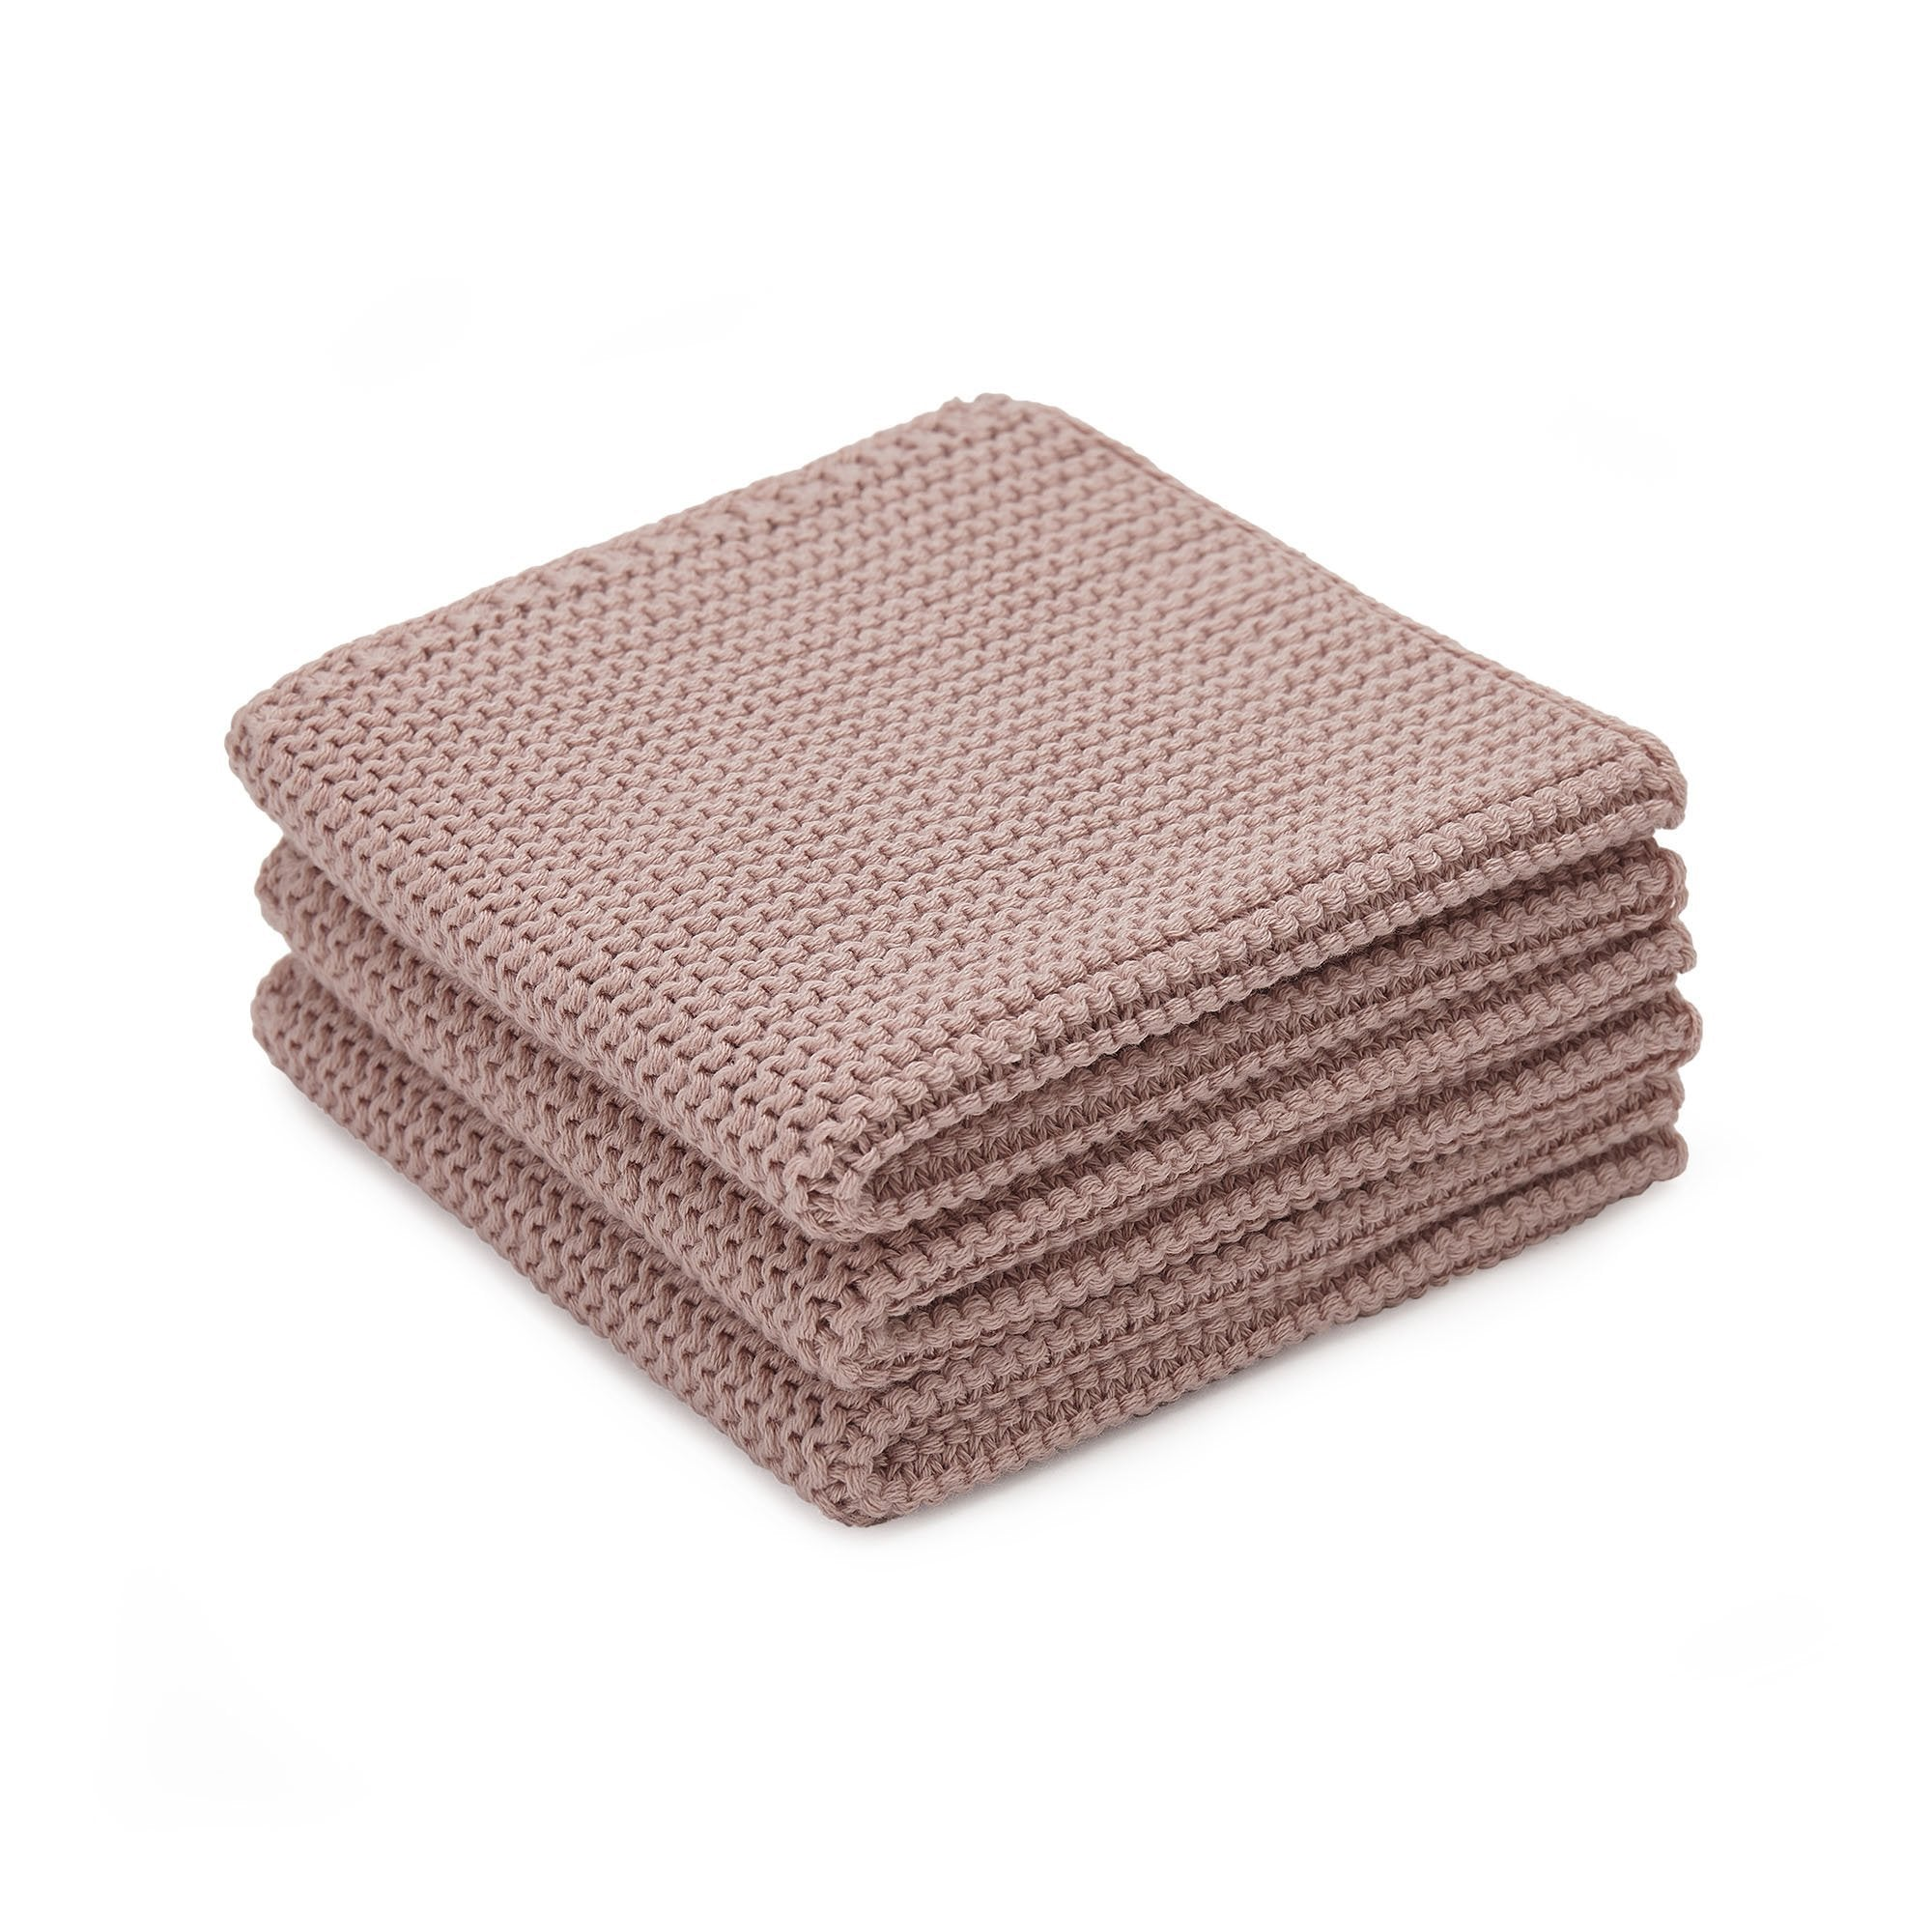 Safara dishcloth, powder pink, 100% cotton